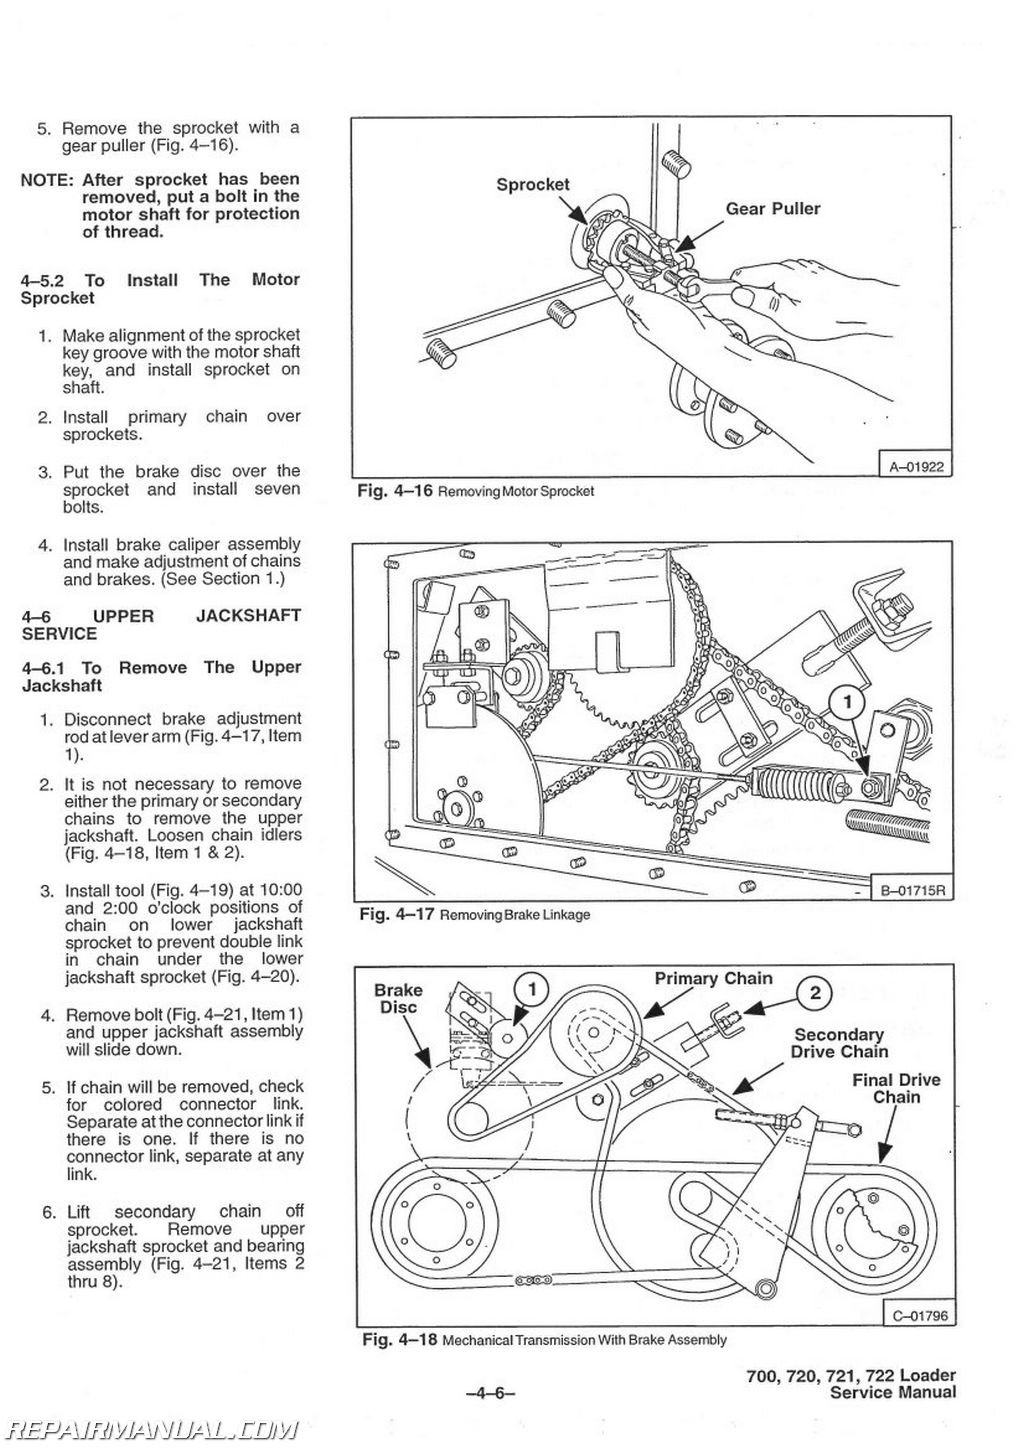 hight resolution of bobcat 700 720 721 722 skid steer service manual rh repairmanual com bobcat model 720 schematic bobcat engine